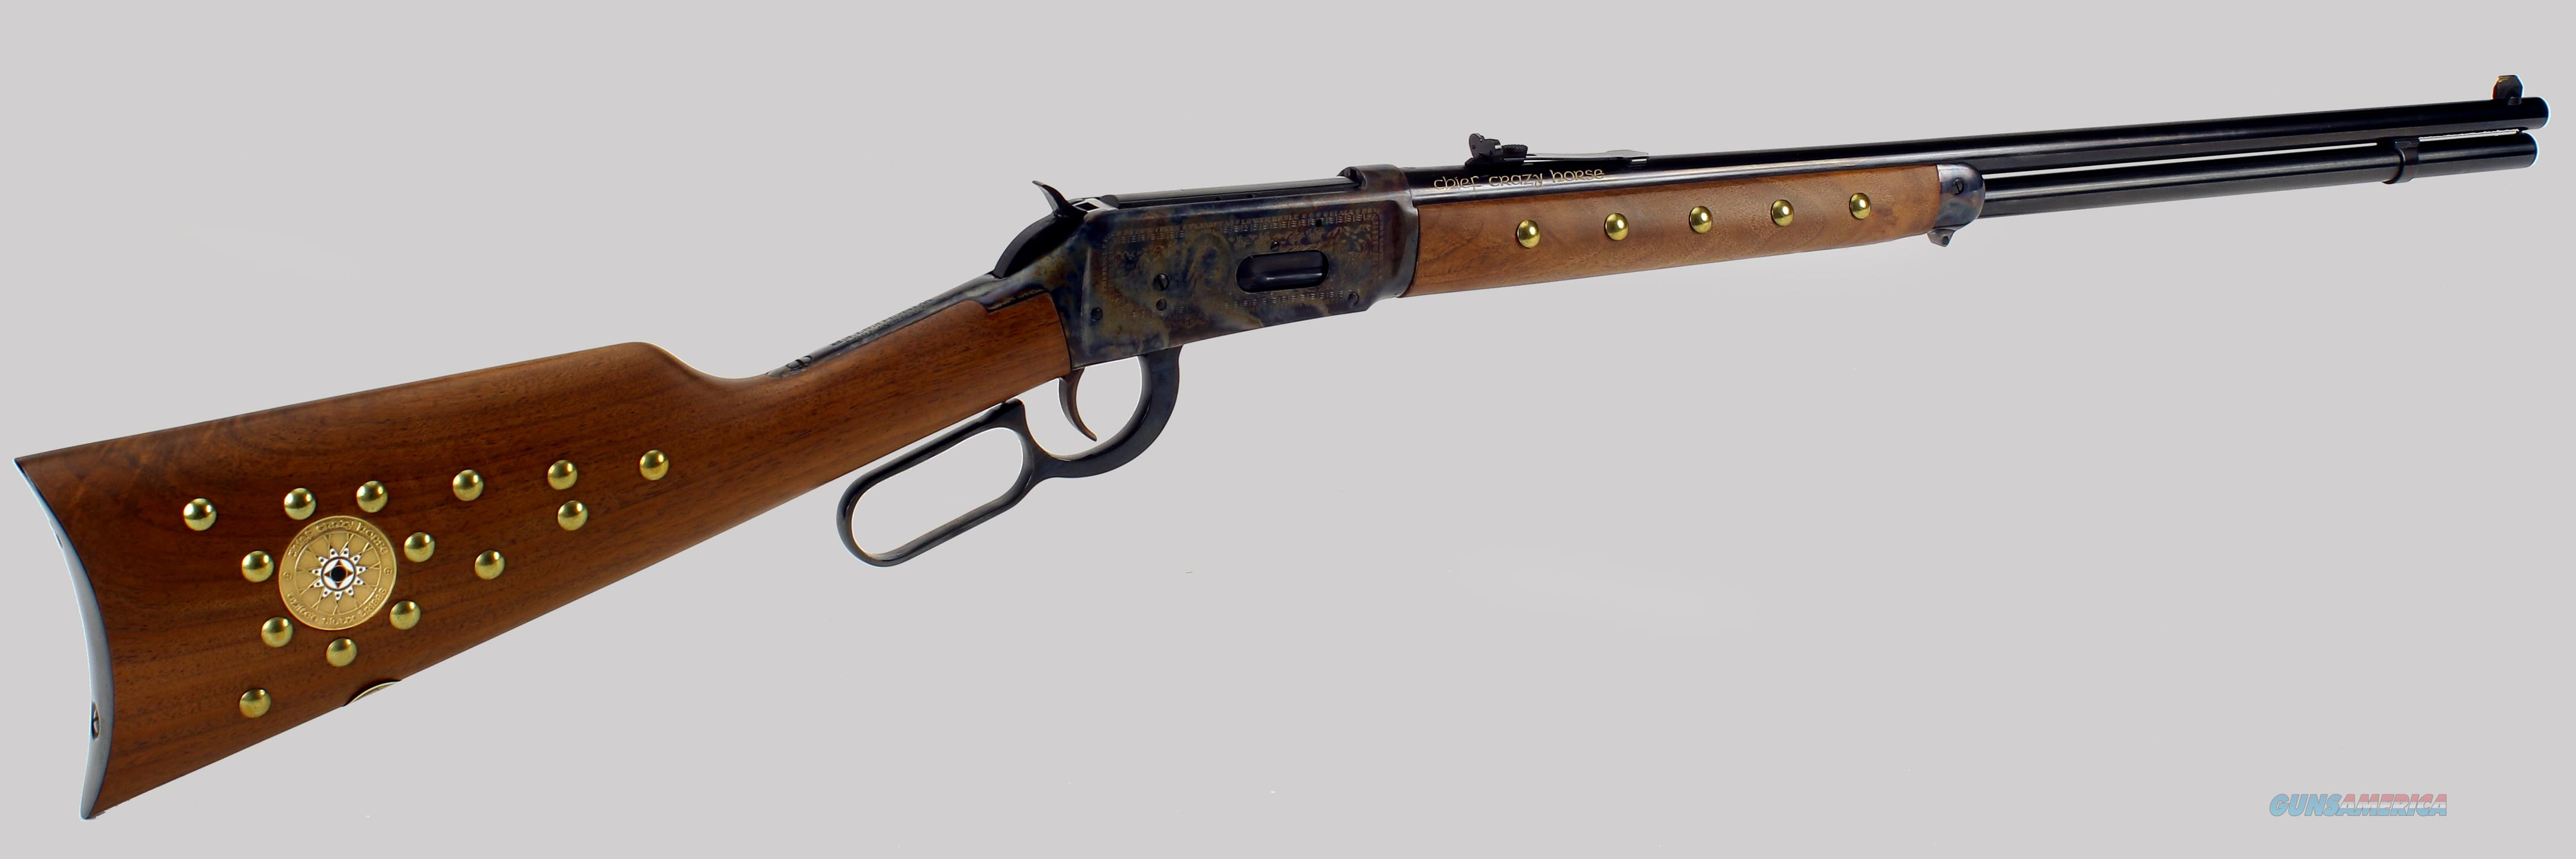 Winchester  94 Chief Crazy Horse Rifle  Guns > Rifles > Winchester Rifle Commemoratives